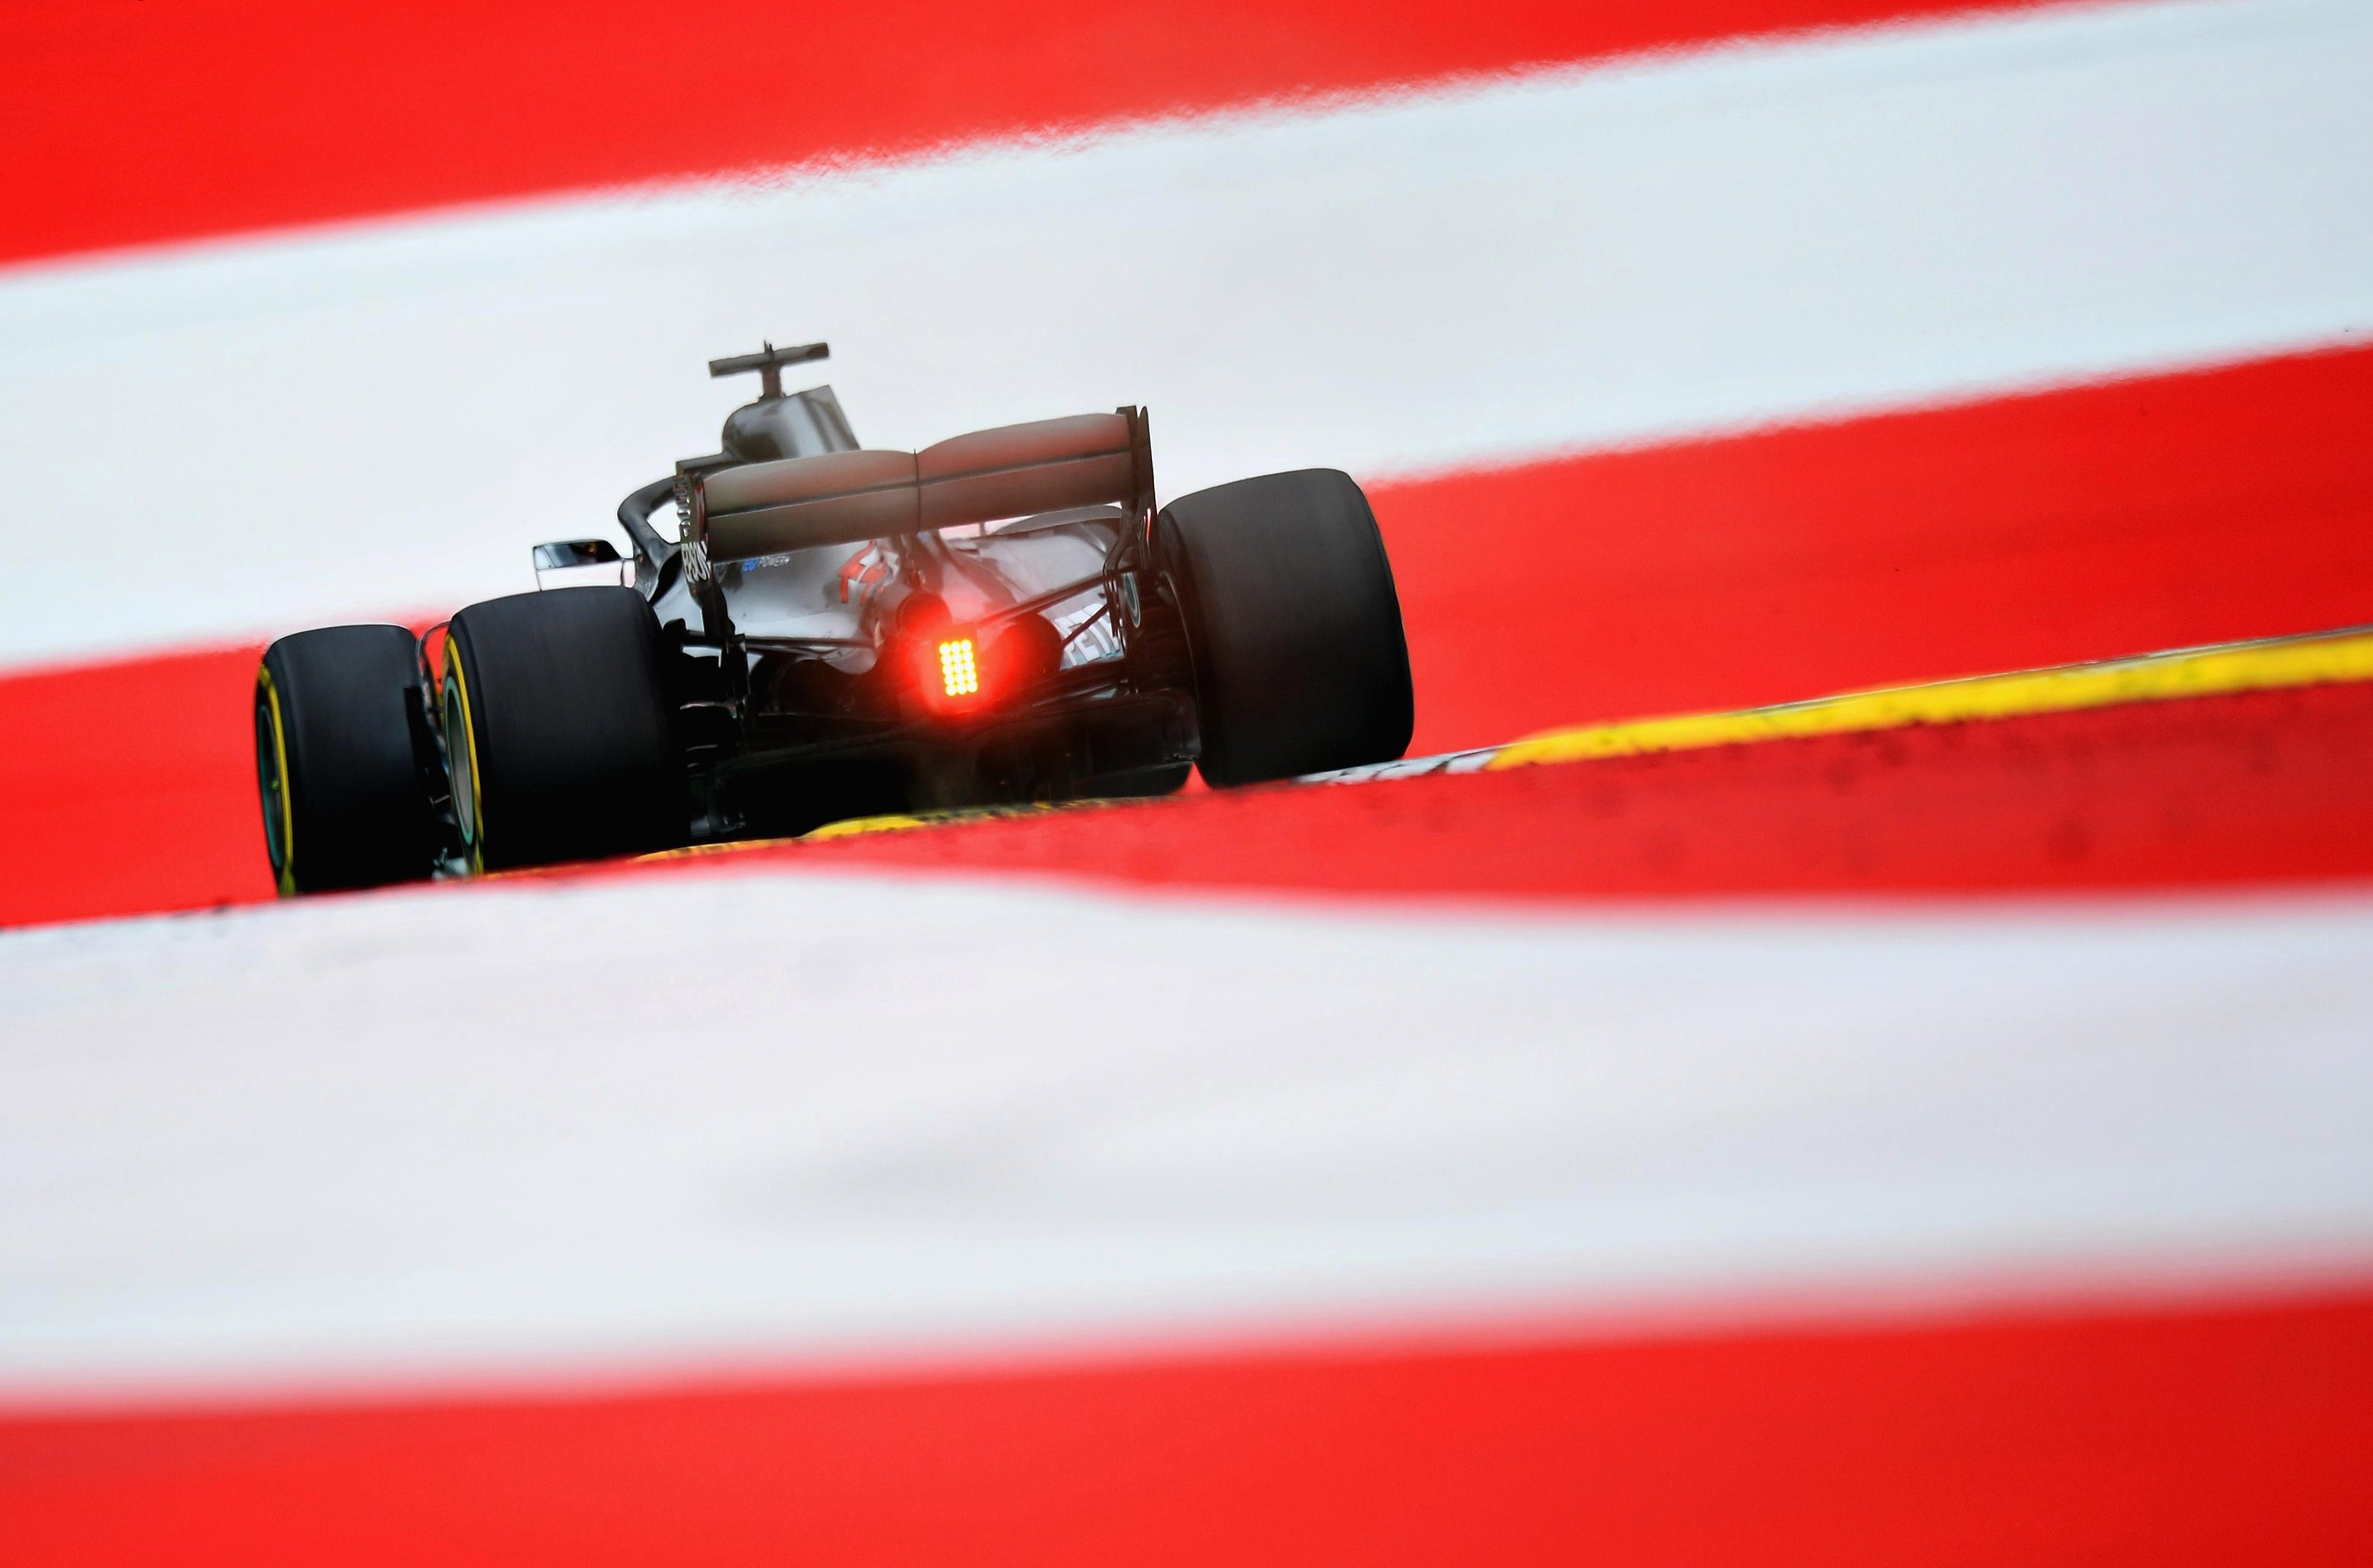 Hamilton was the fastest in practice in Austria as he bids to extend his lead at the top of the driver's championship